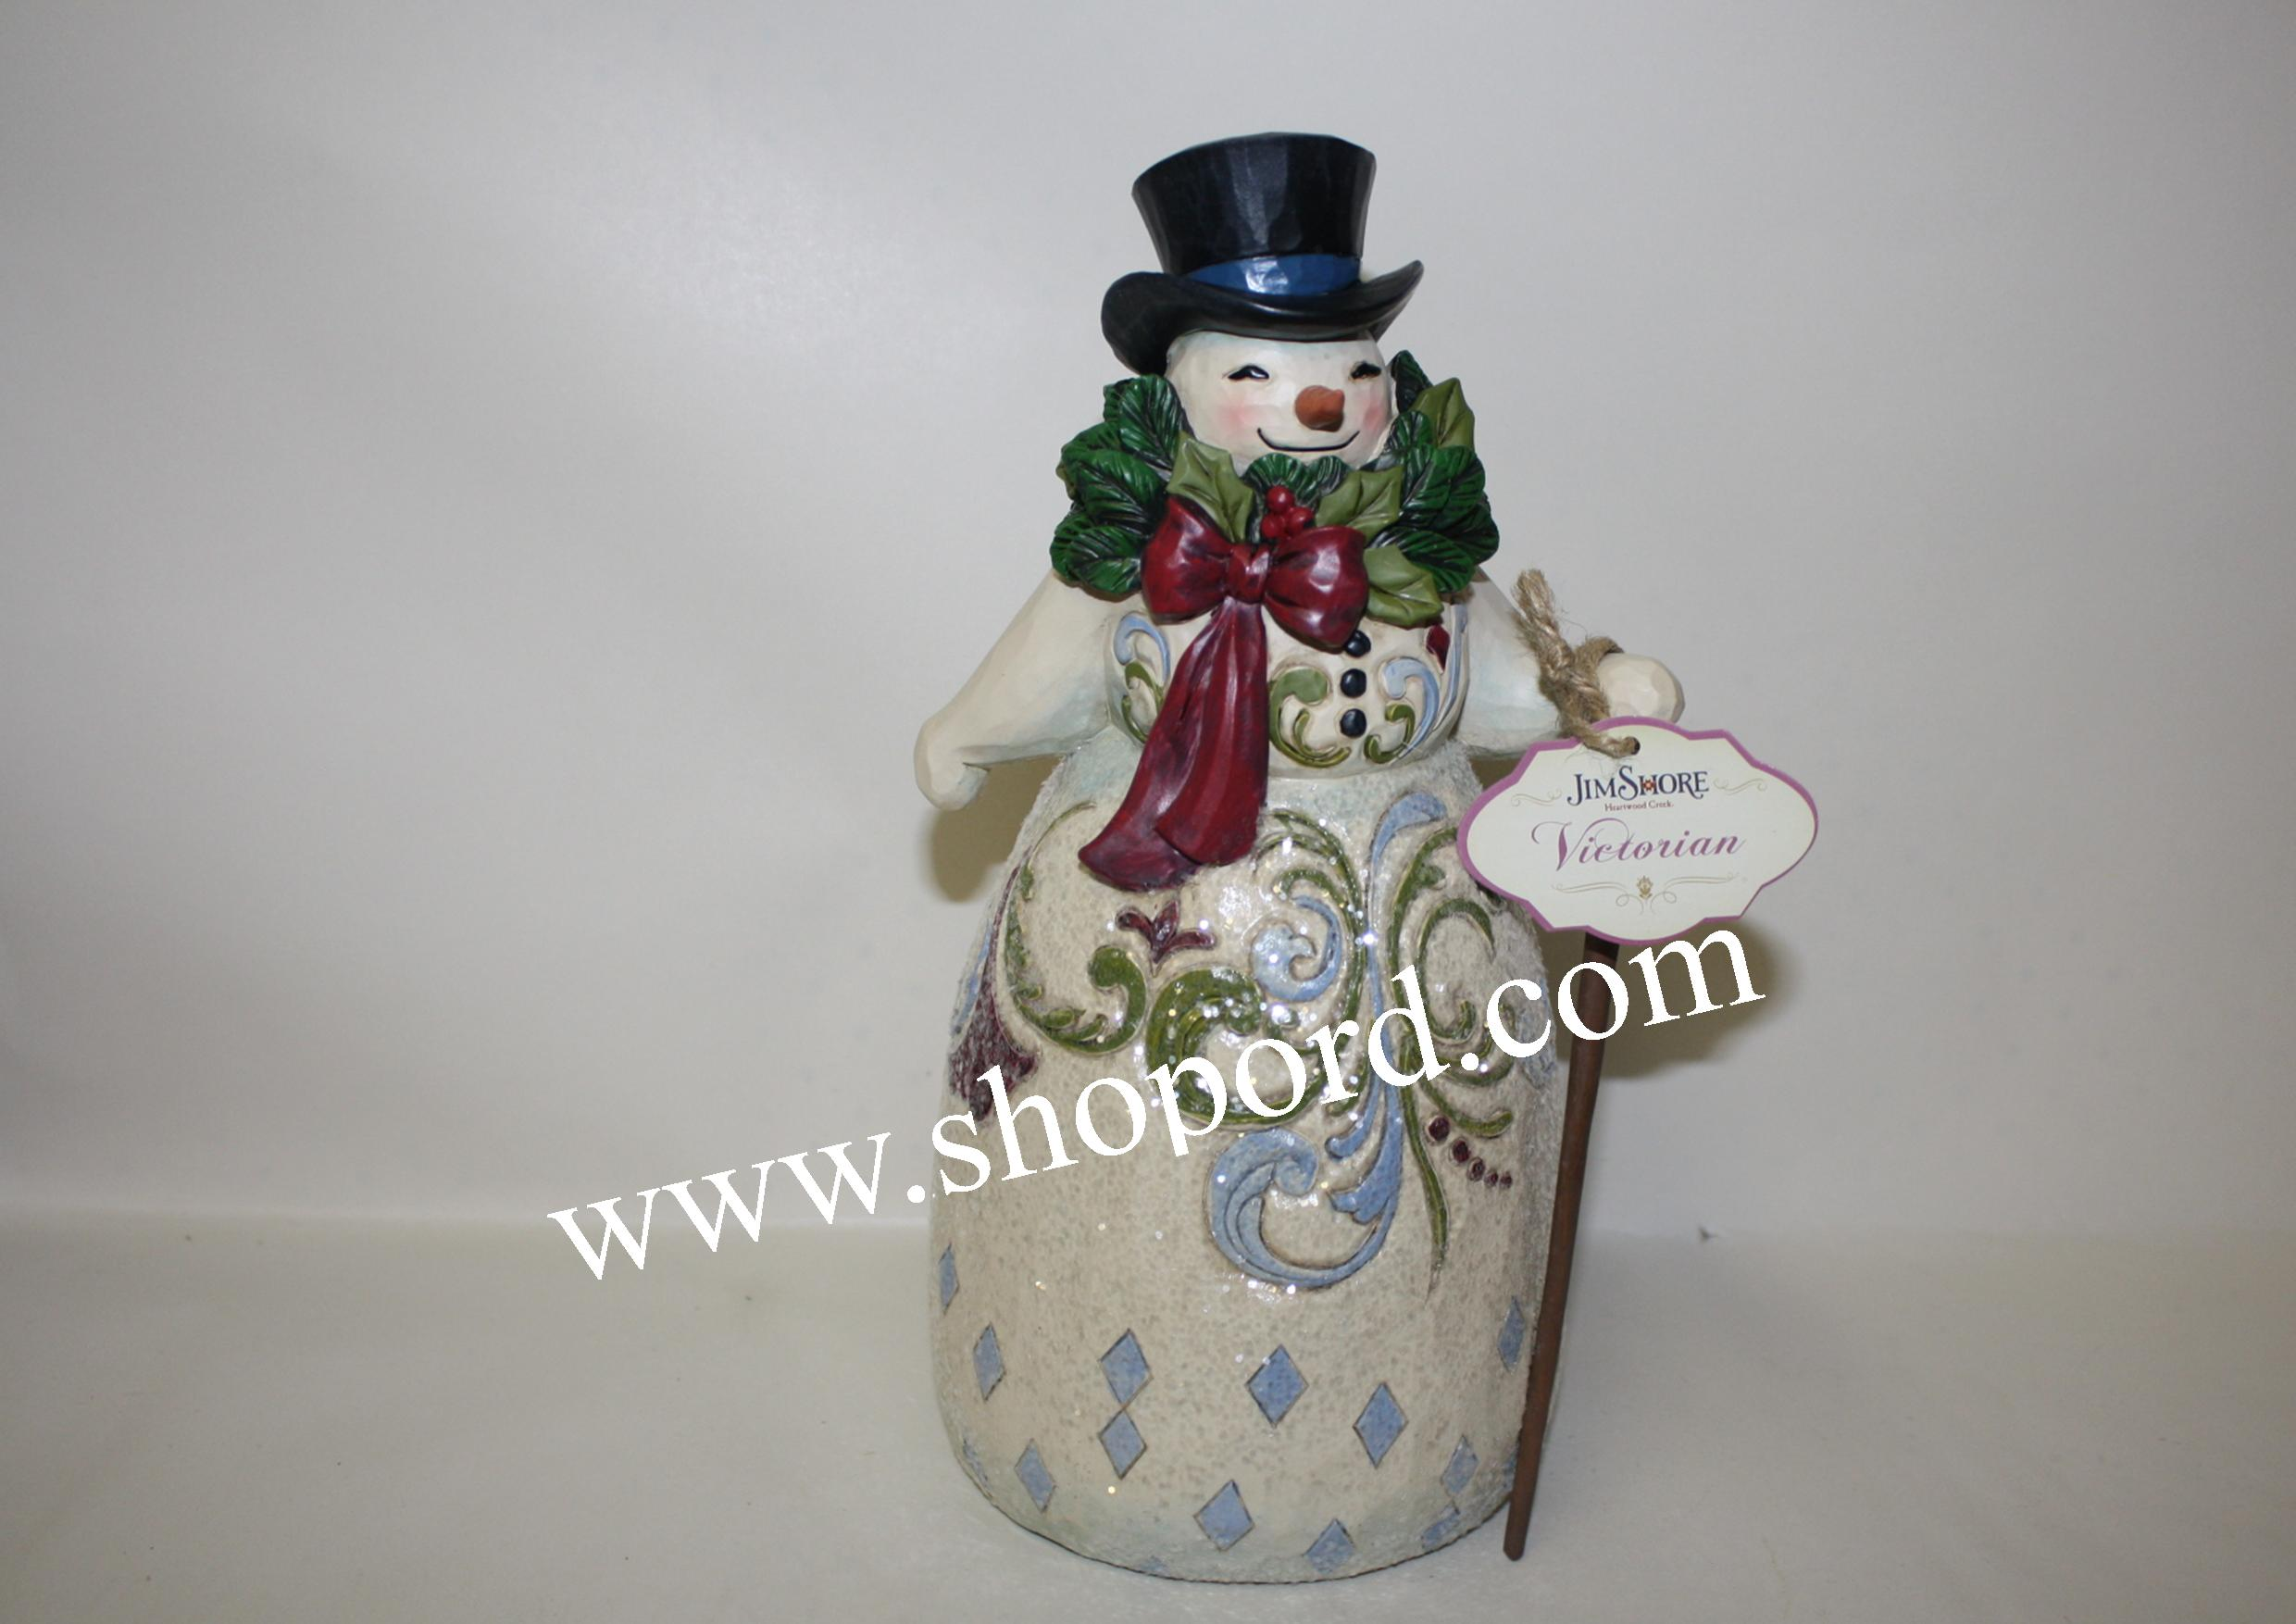 Jim Shore Be Joyful Always Victorian Snowman With Wreath Figurine 4053679